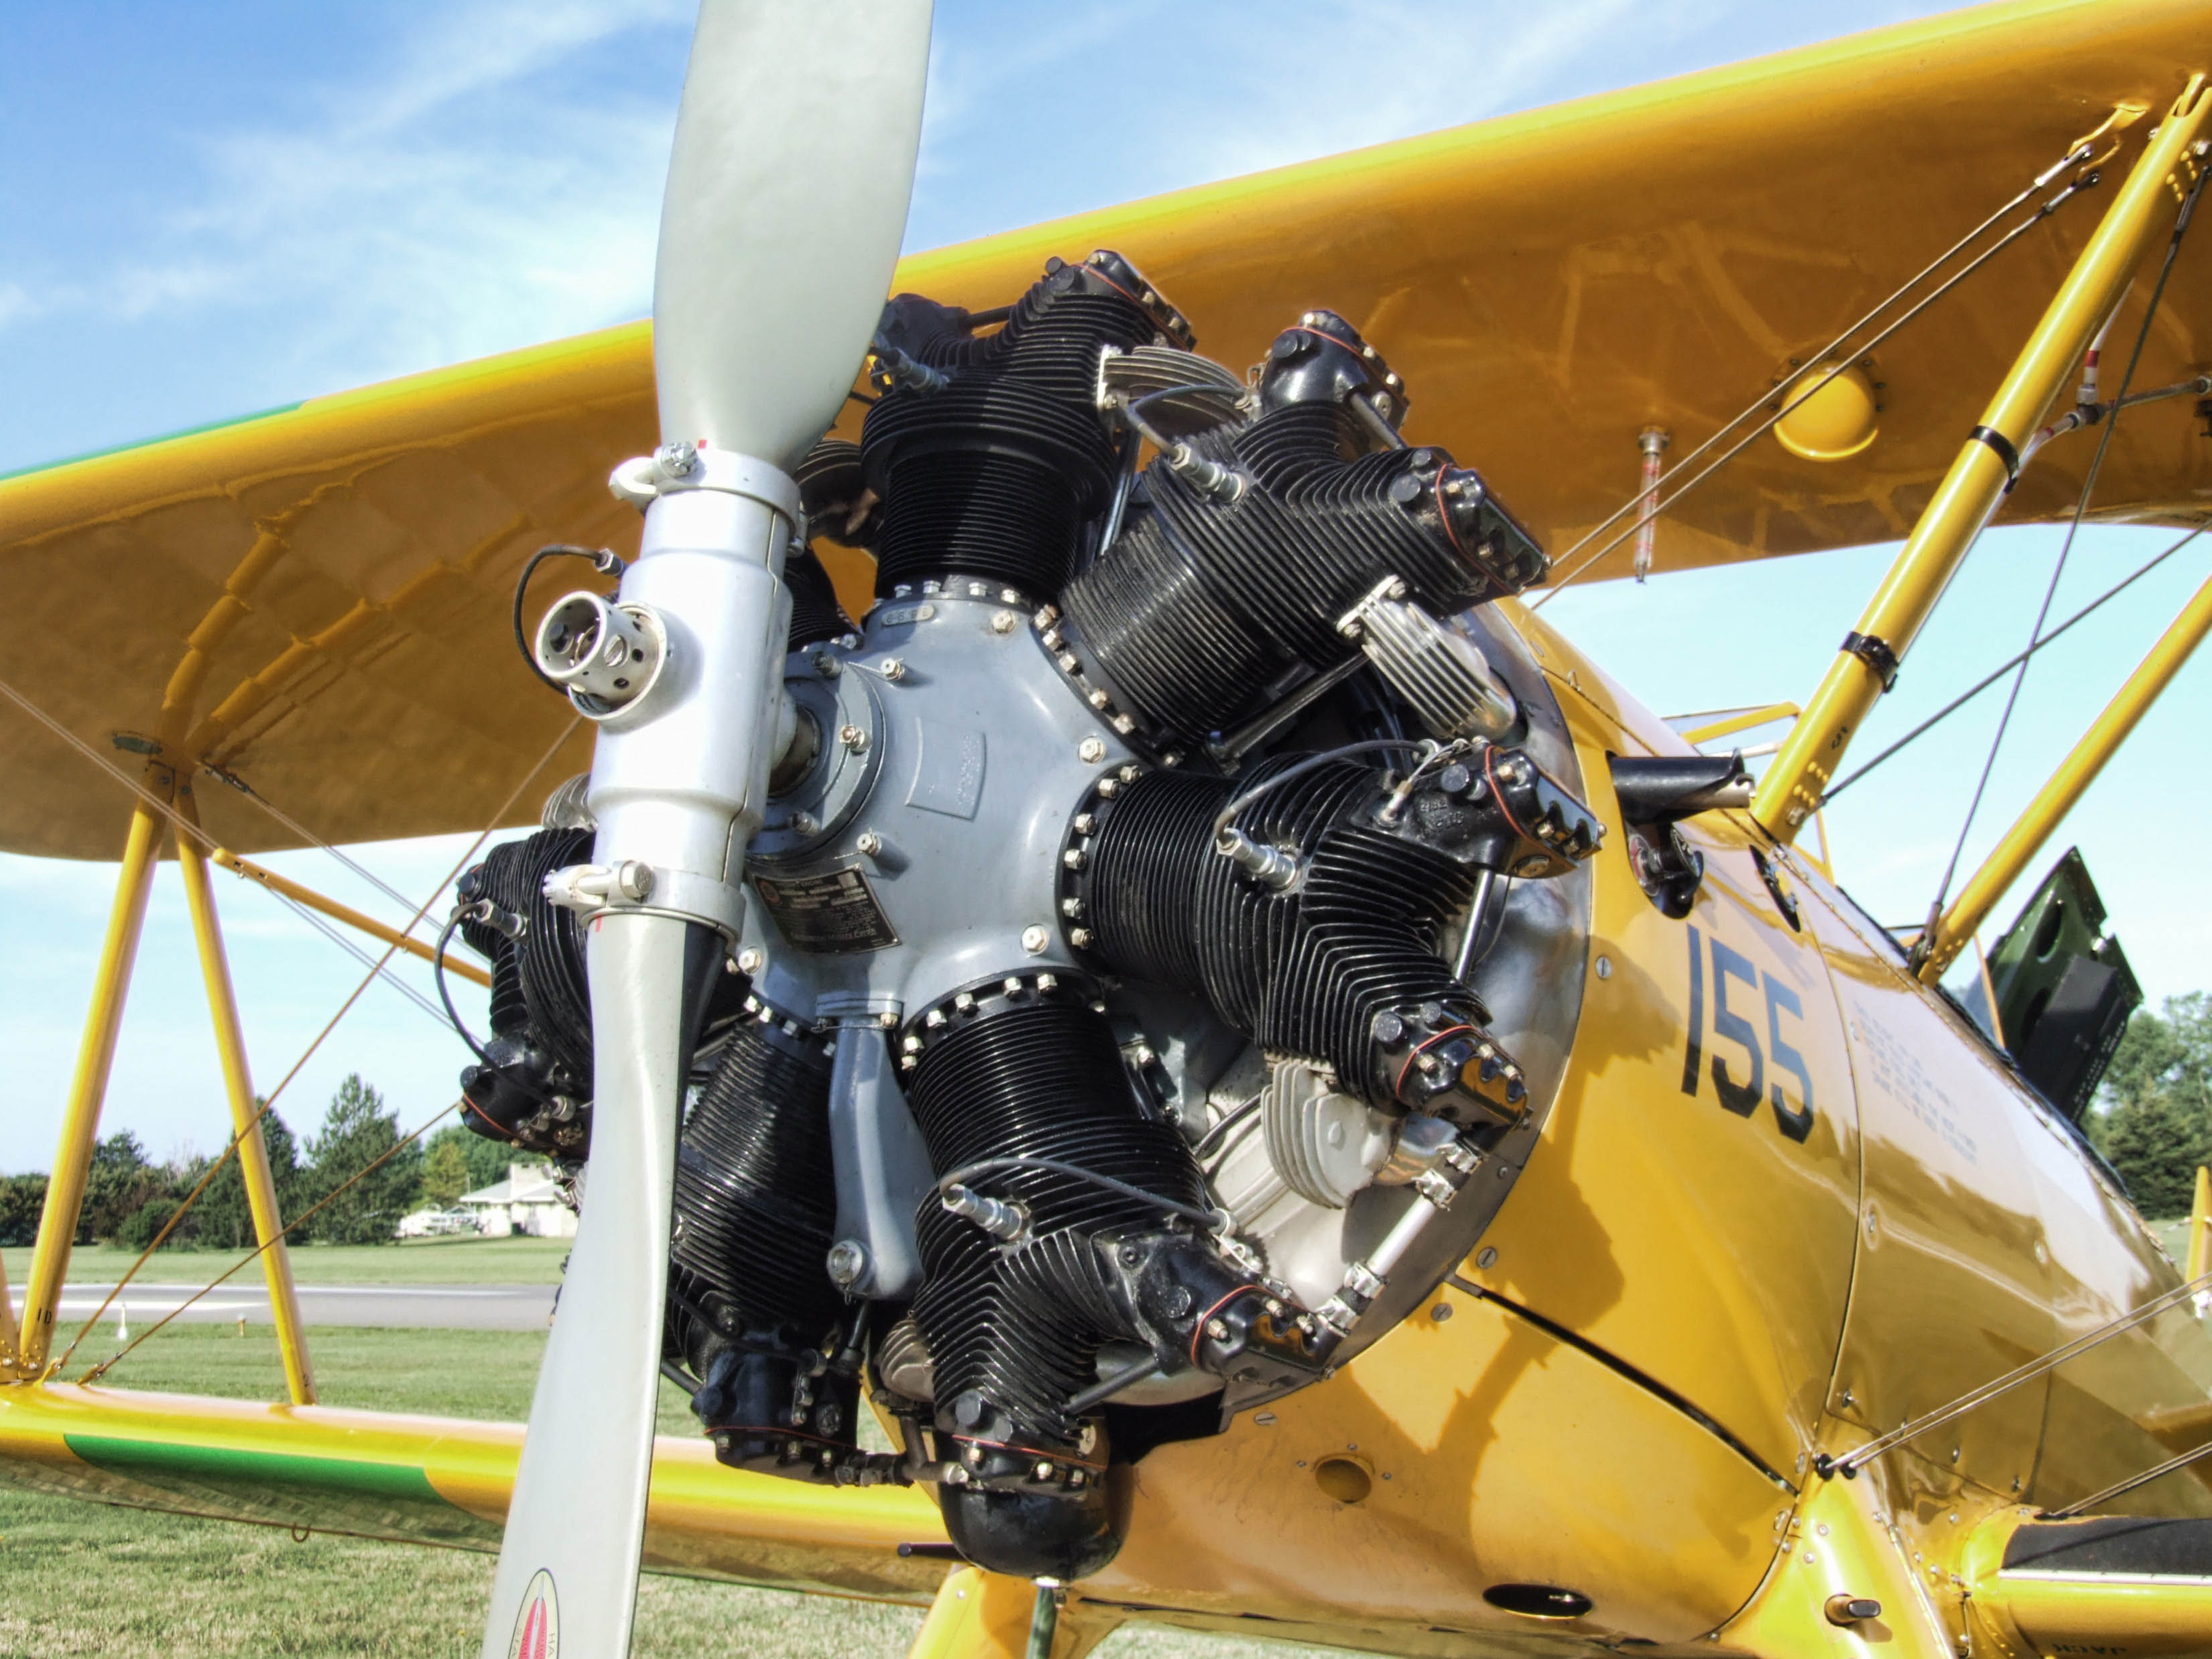 BENTON_AIRPORT_STEARMAN_T_FLY_IN_JUNE_2008_011